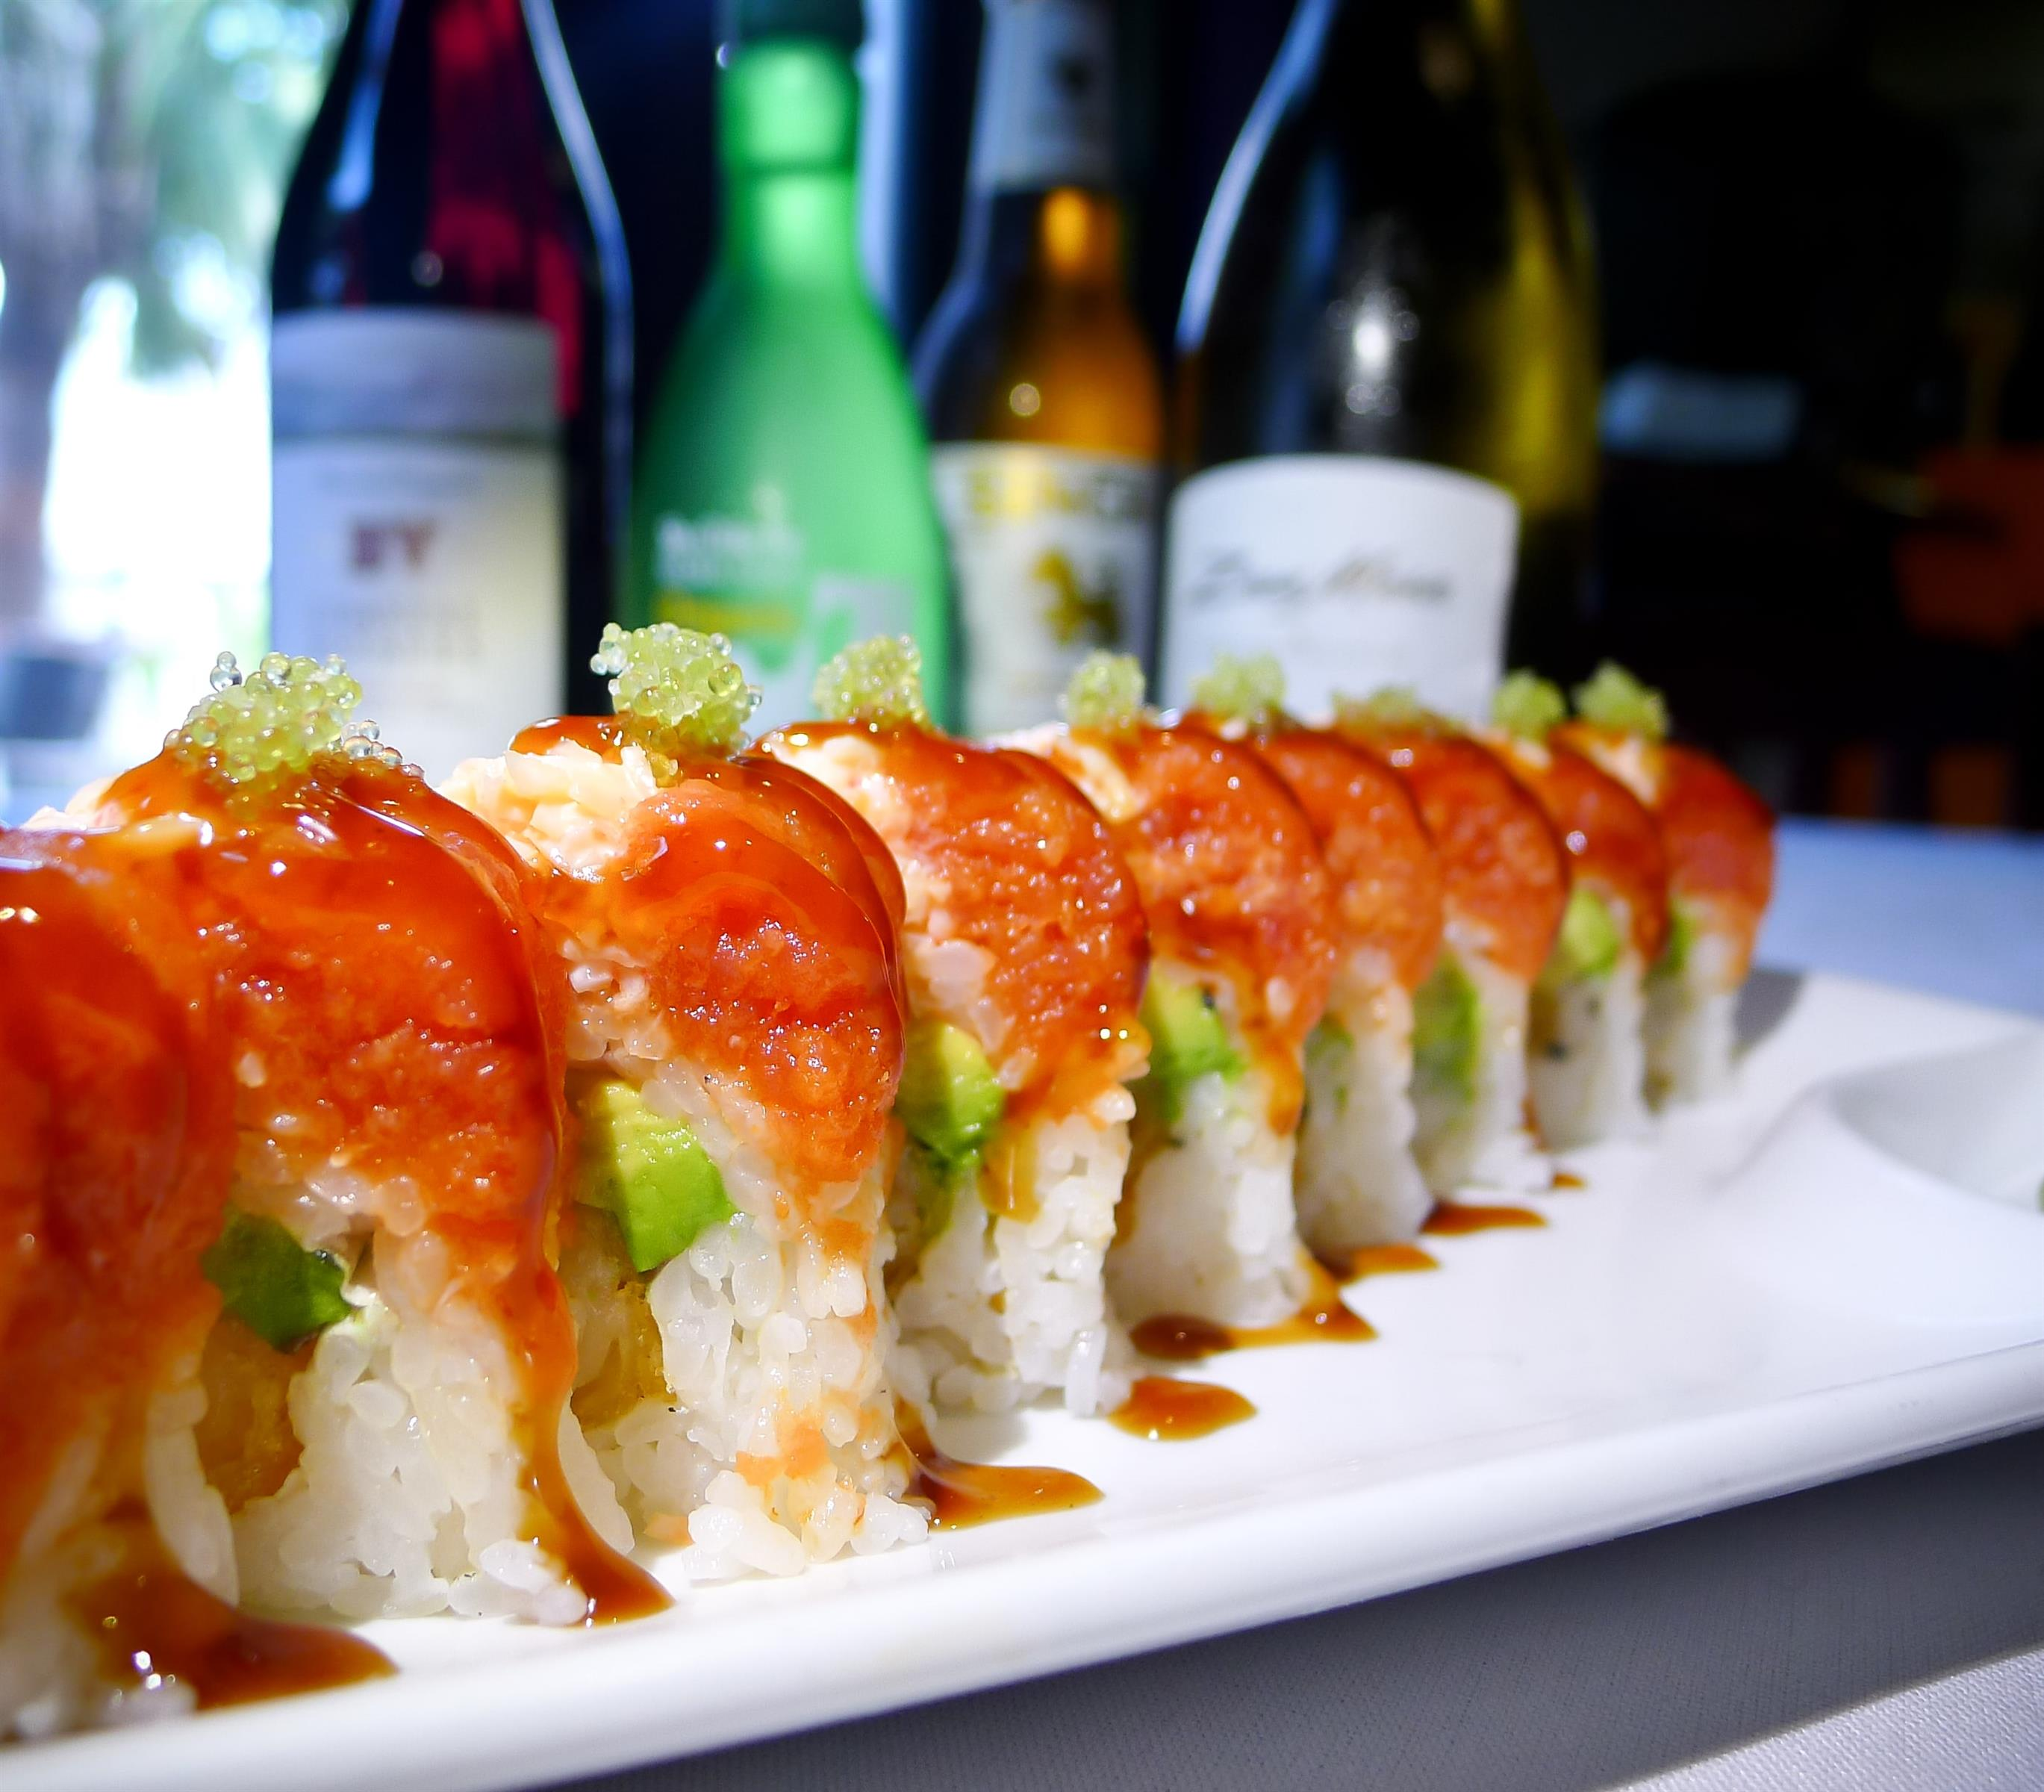 Sushi lined up on white plate covered in orange sauce in front of glass bottles